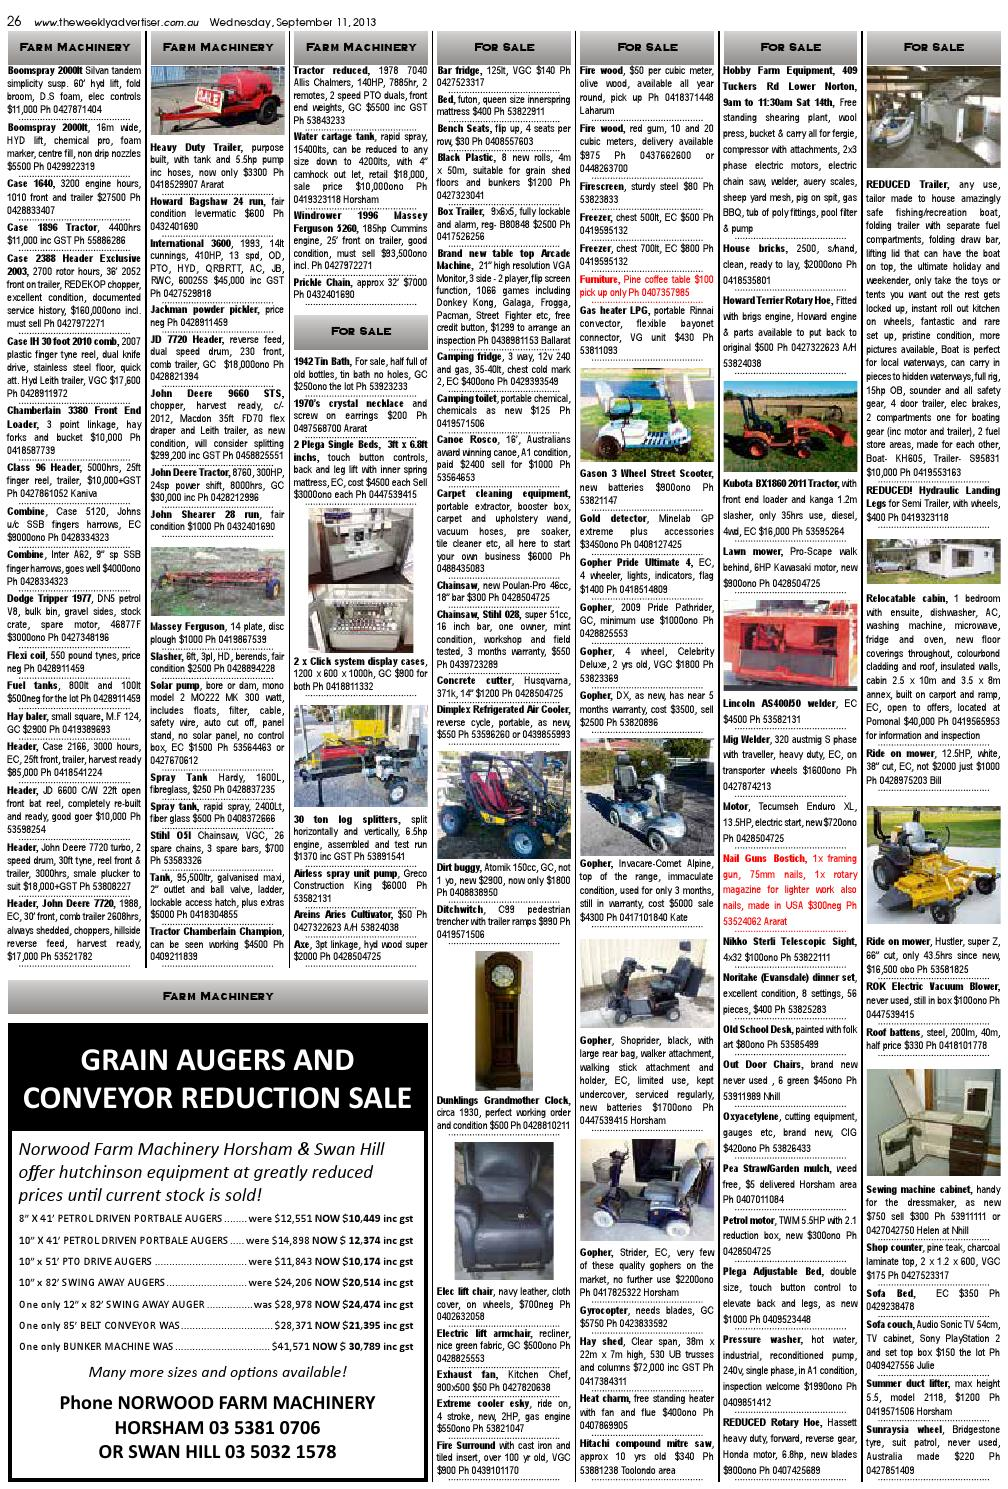 The Weekly Advertiser - Wednesday, September 11, 2013 edition by The